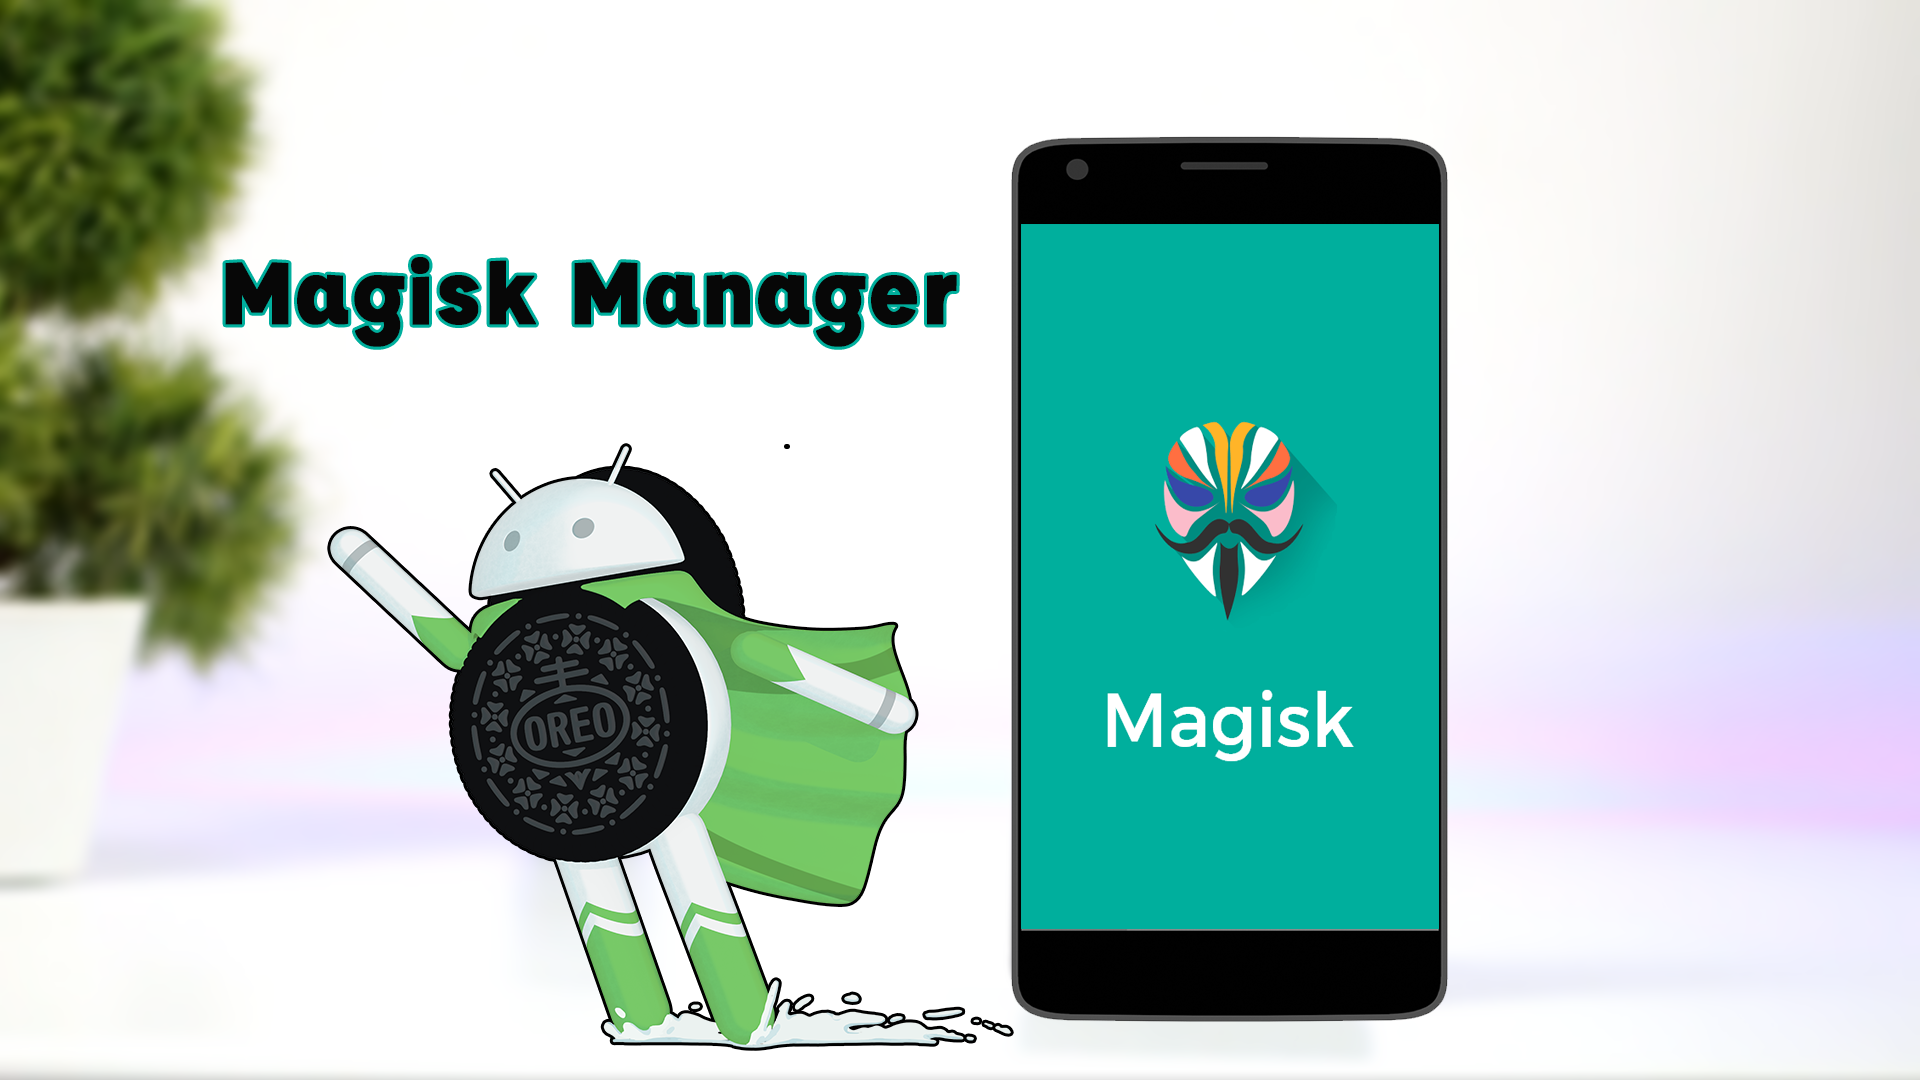 Magisk Manager Safest Way To Root And Install Mods On